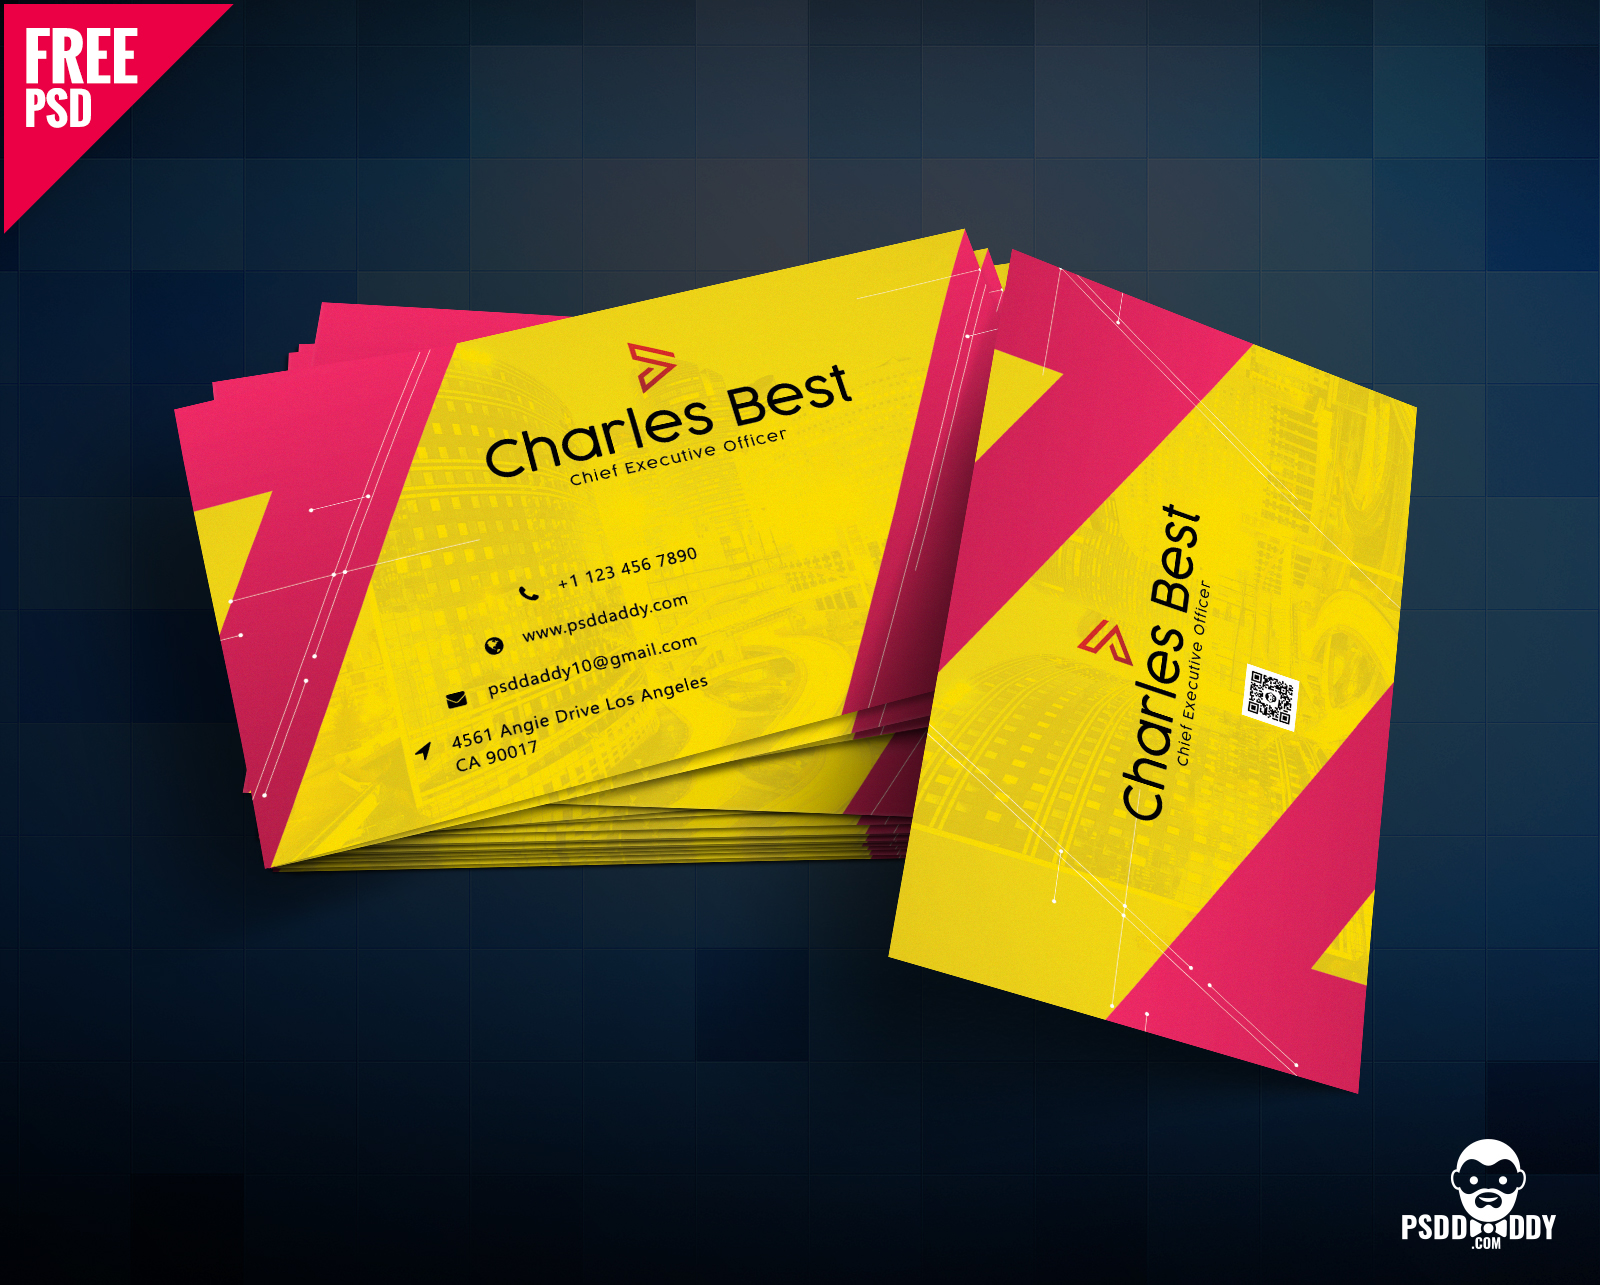 Download Creative Business Card Free PSD PsdDaddycom - Business card template psd download